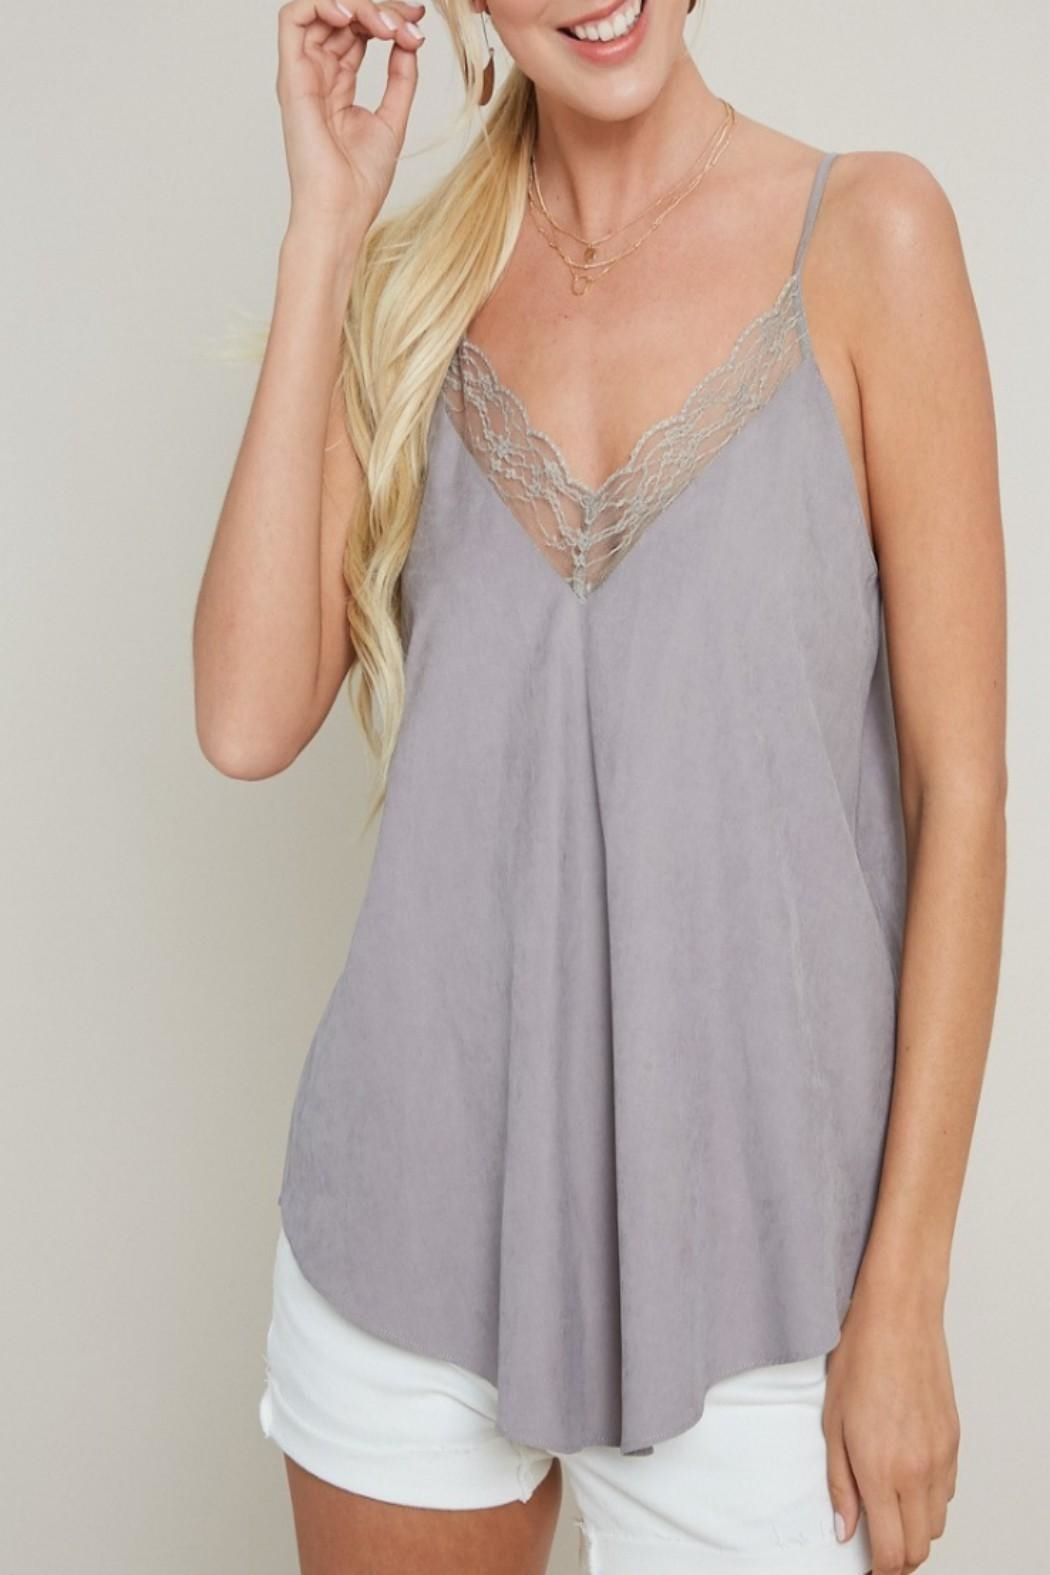 eesome Lace Cami Top - Side Cropped Image